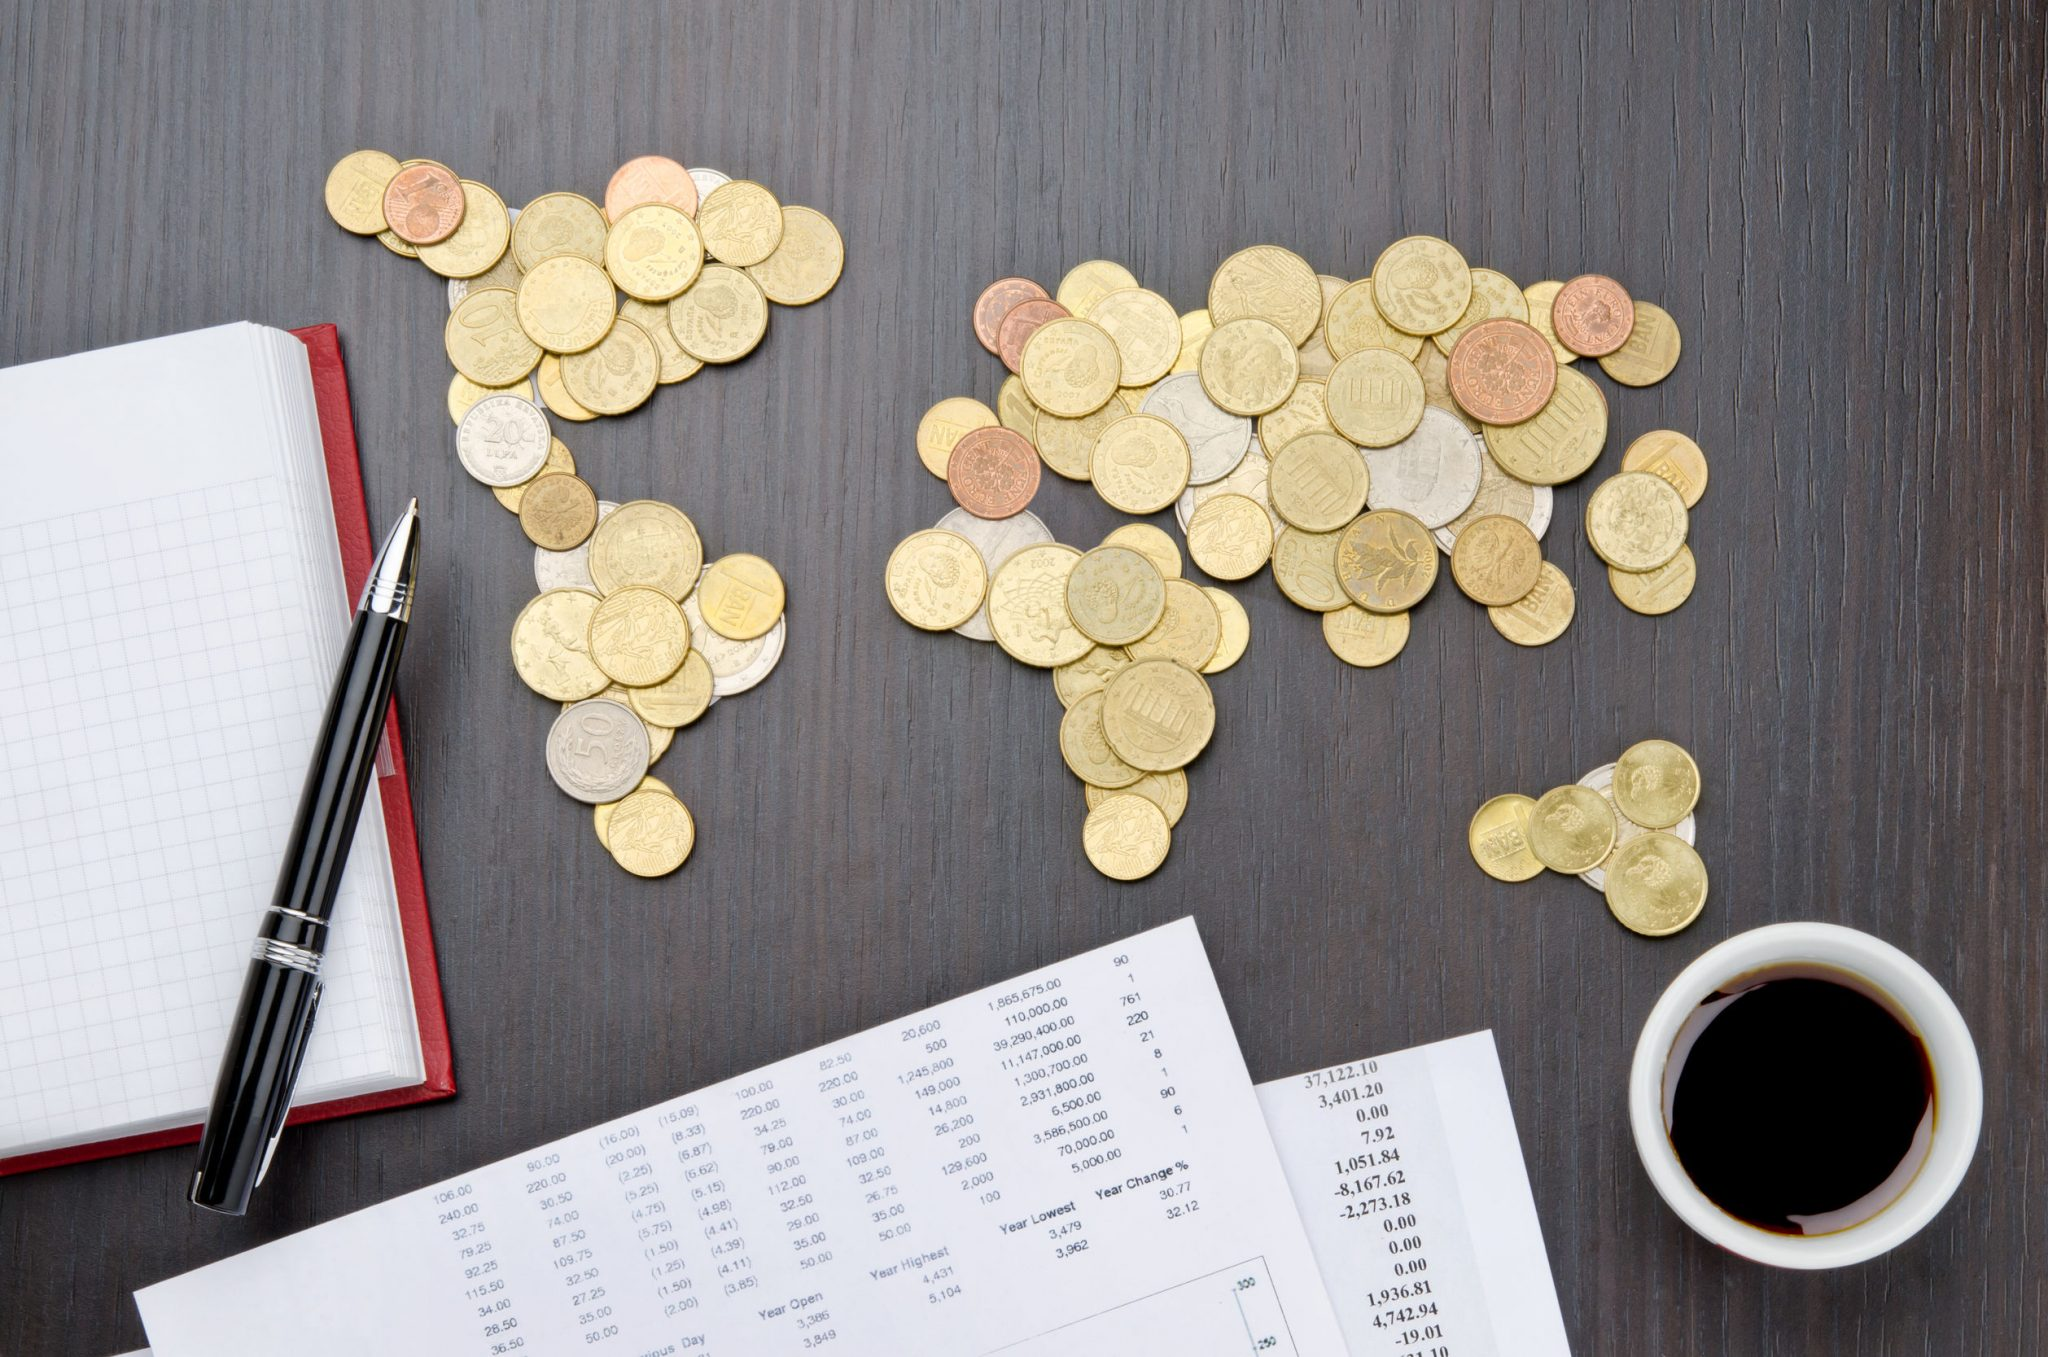 coins in the shape of world countries on a table with financial reports